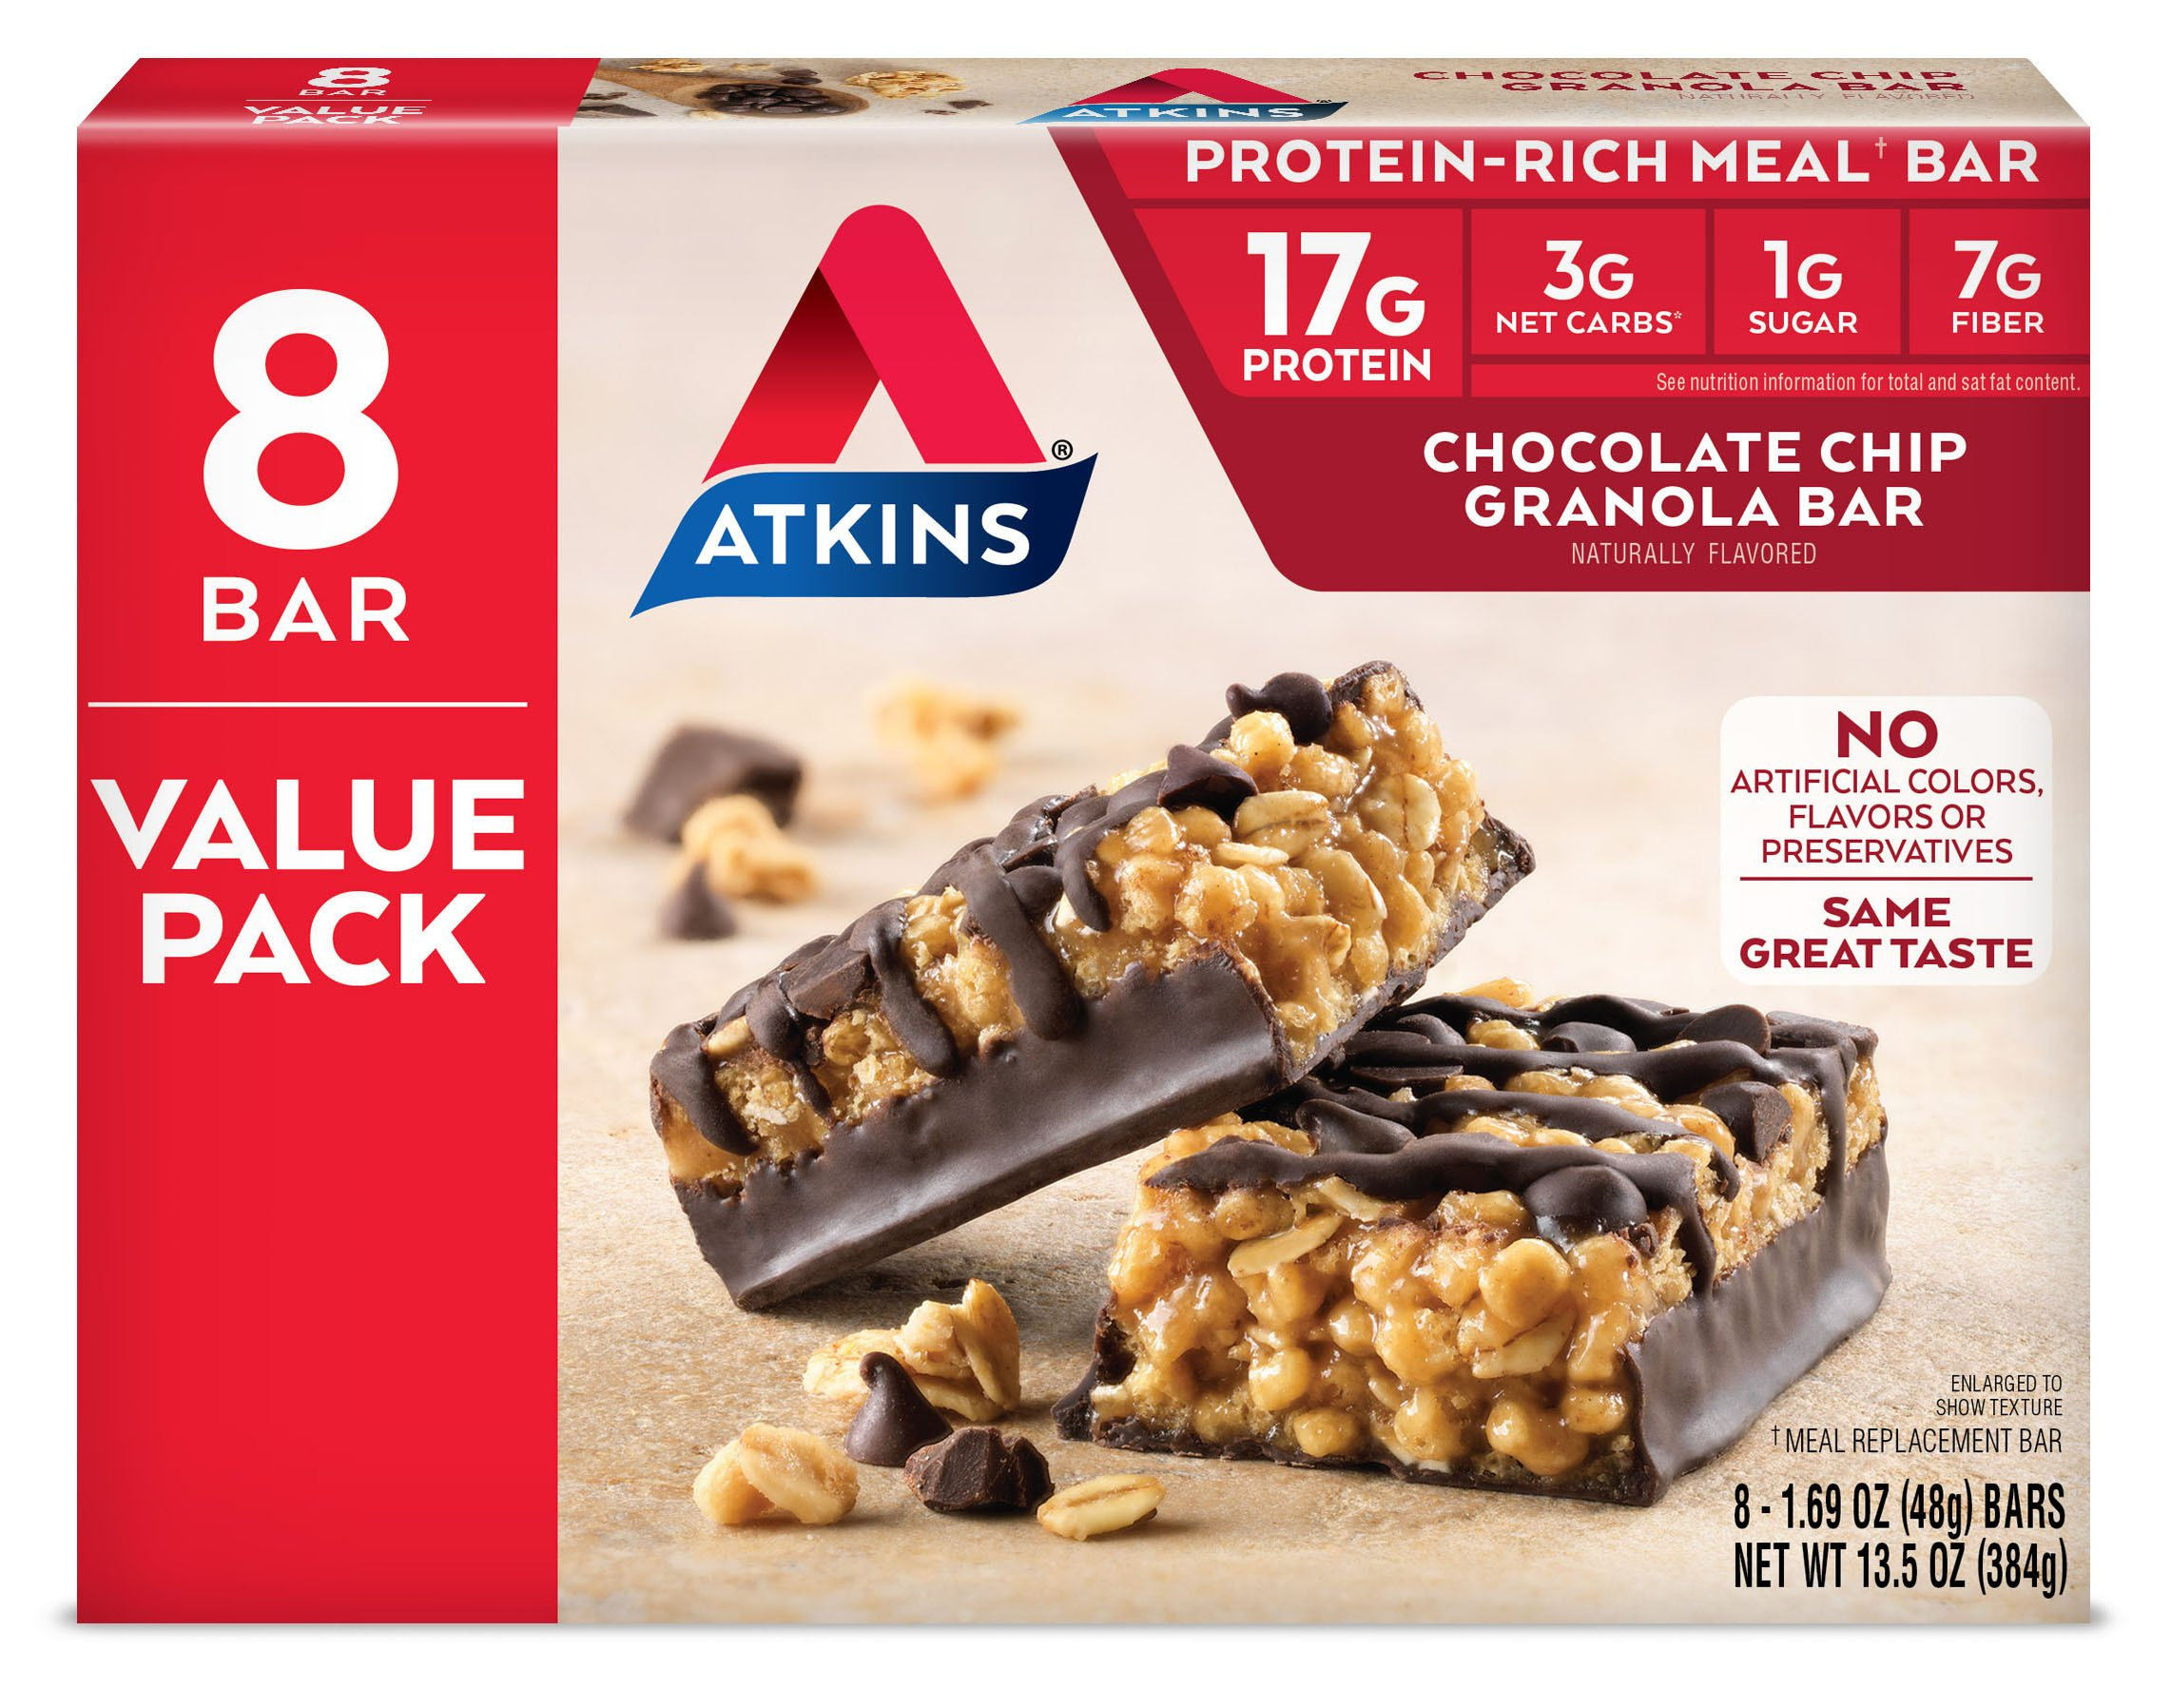 Atkins Protein-Rich Meal Bar, Chocolate Chip Granola, Keto Friendly, 8 Count by Atkins